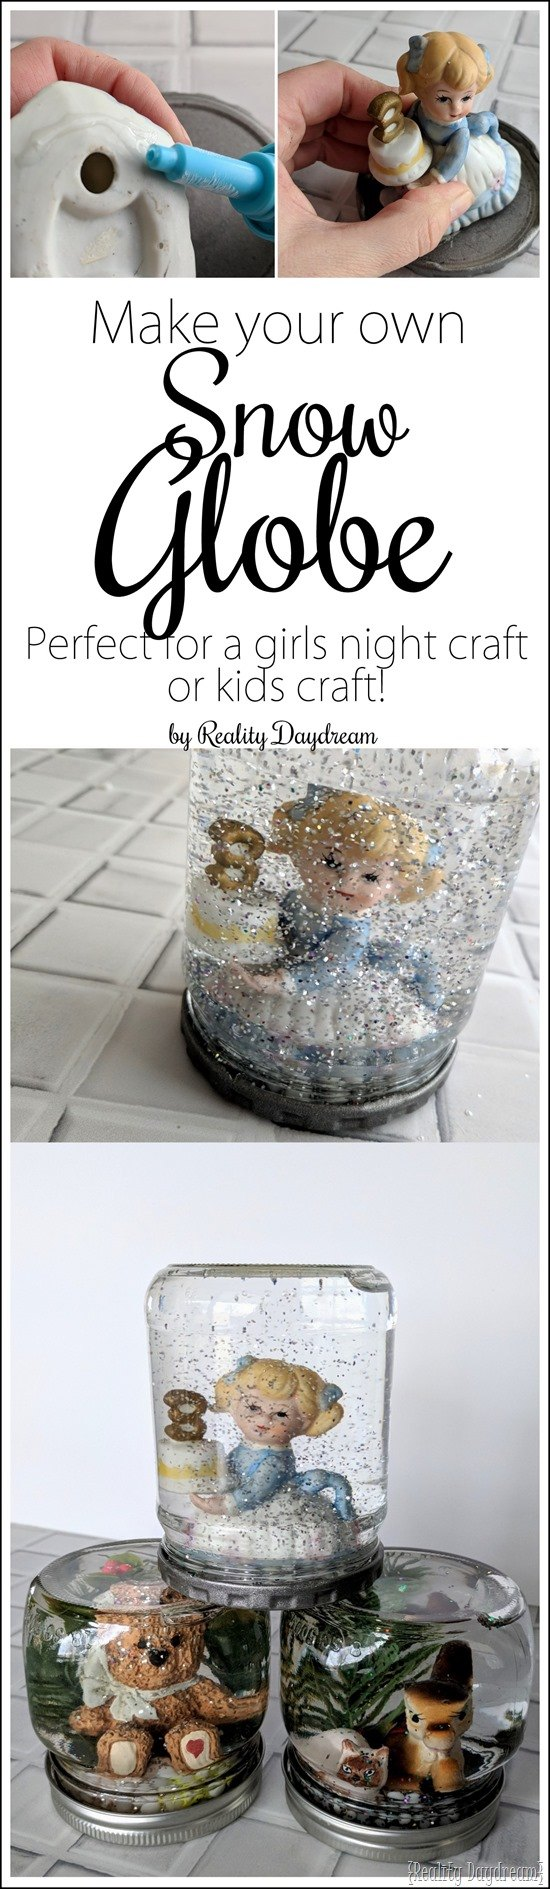 How to make a snow globe with this fun DIY craft - perfect for girls night or kids craft ideas! {Reality Daydream}